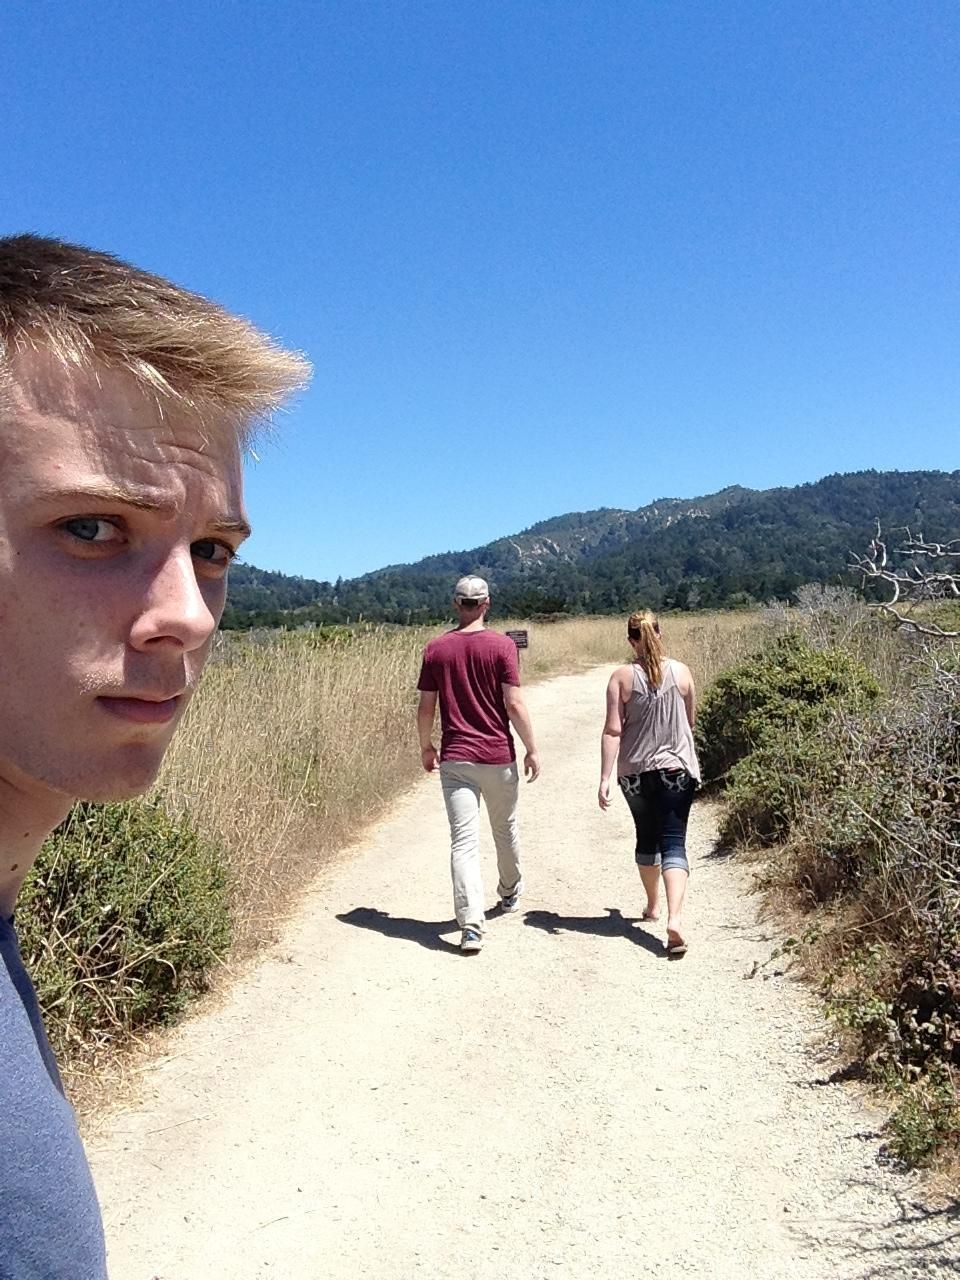 Guy Documented His Life As A Third Wheel, And It's Hilariously Awkward. - http://www.lifebuzz.com/3-wheel/